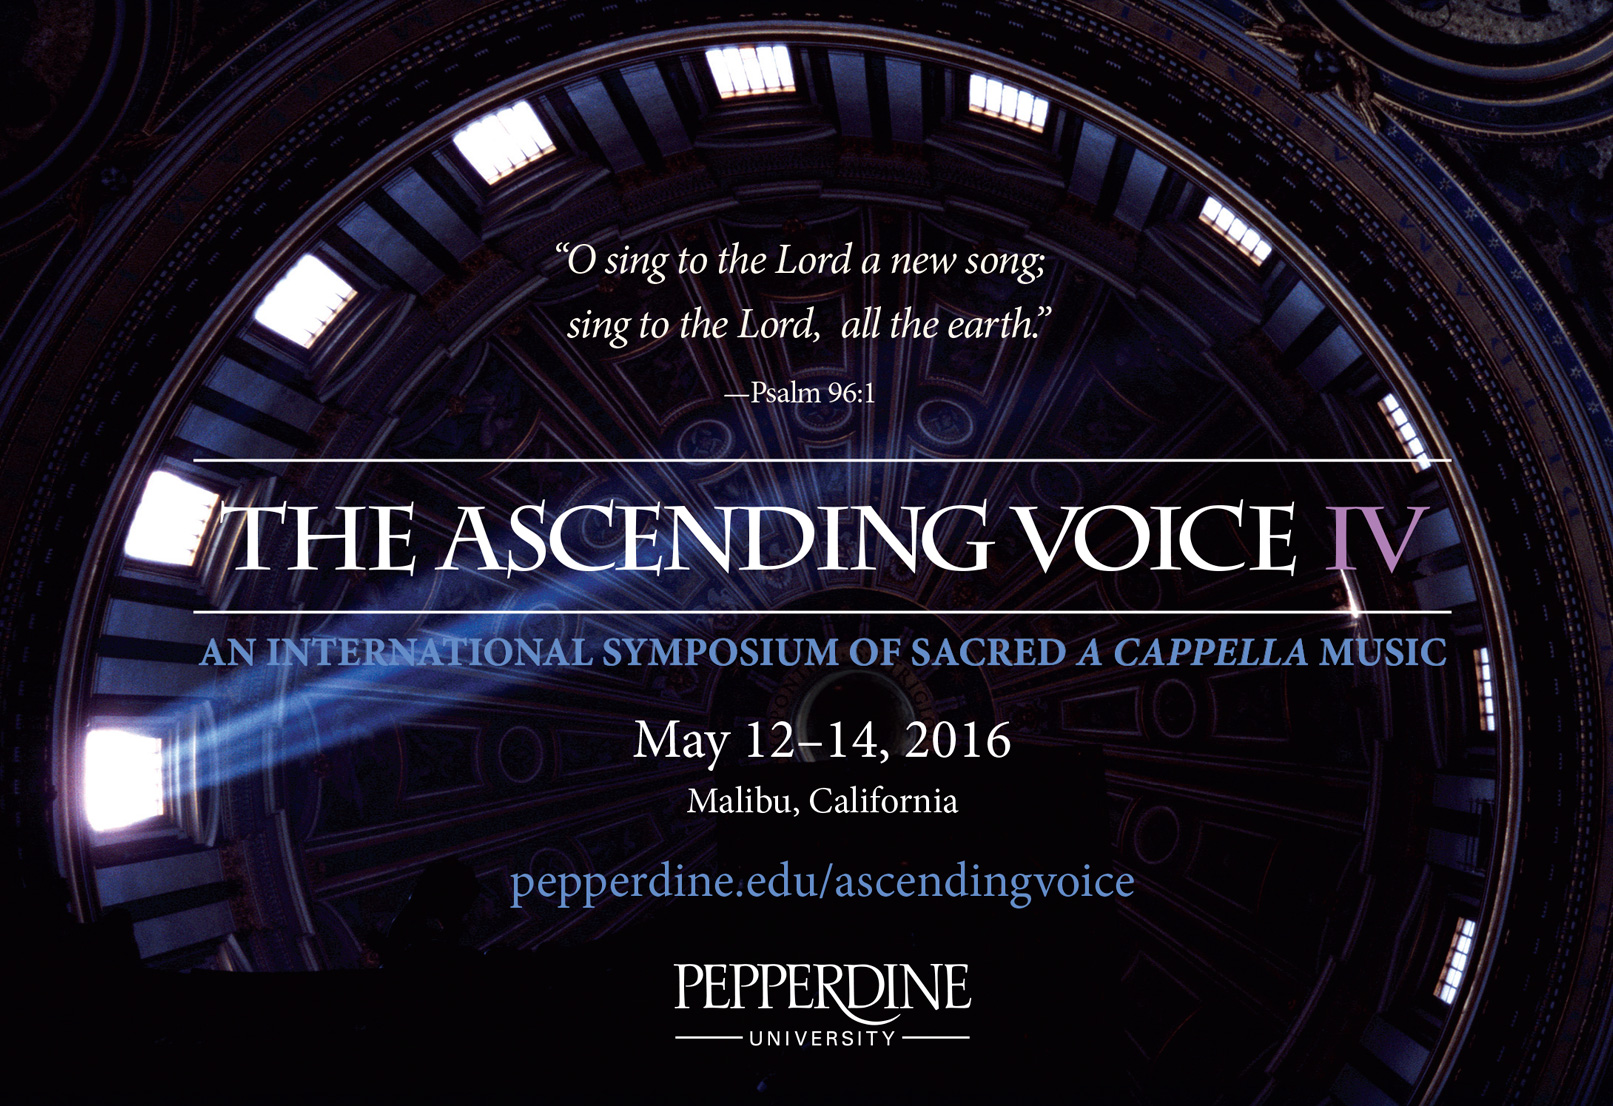 The Ascending Voice IV event logo - Pepperdine University